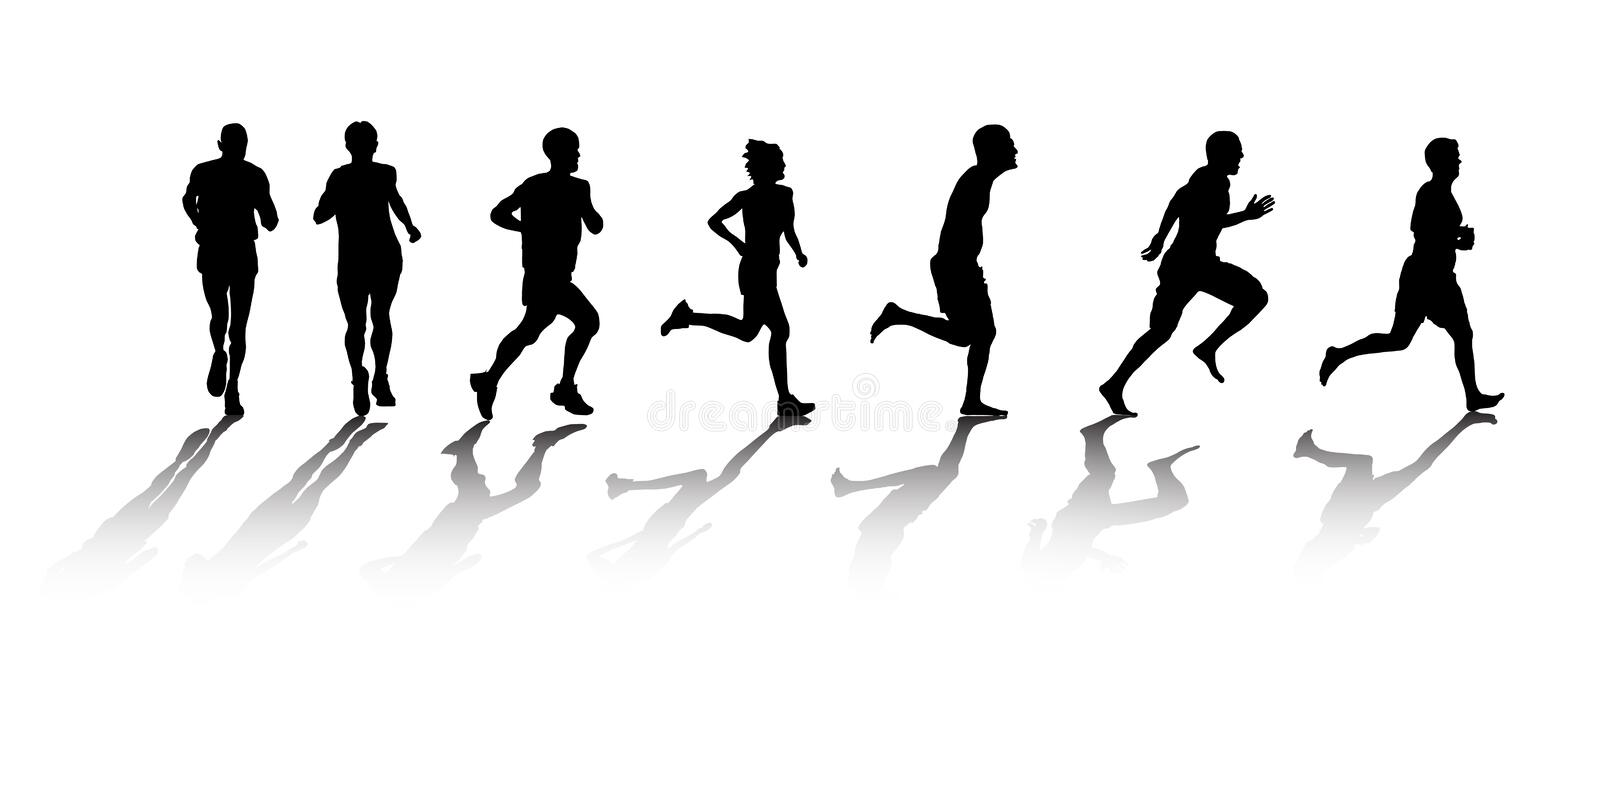 Runners royalty free illustration